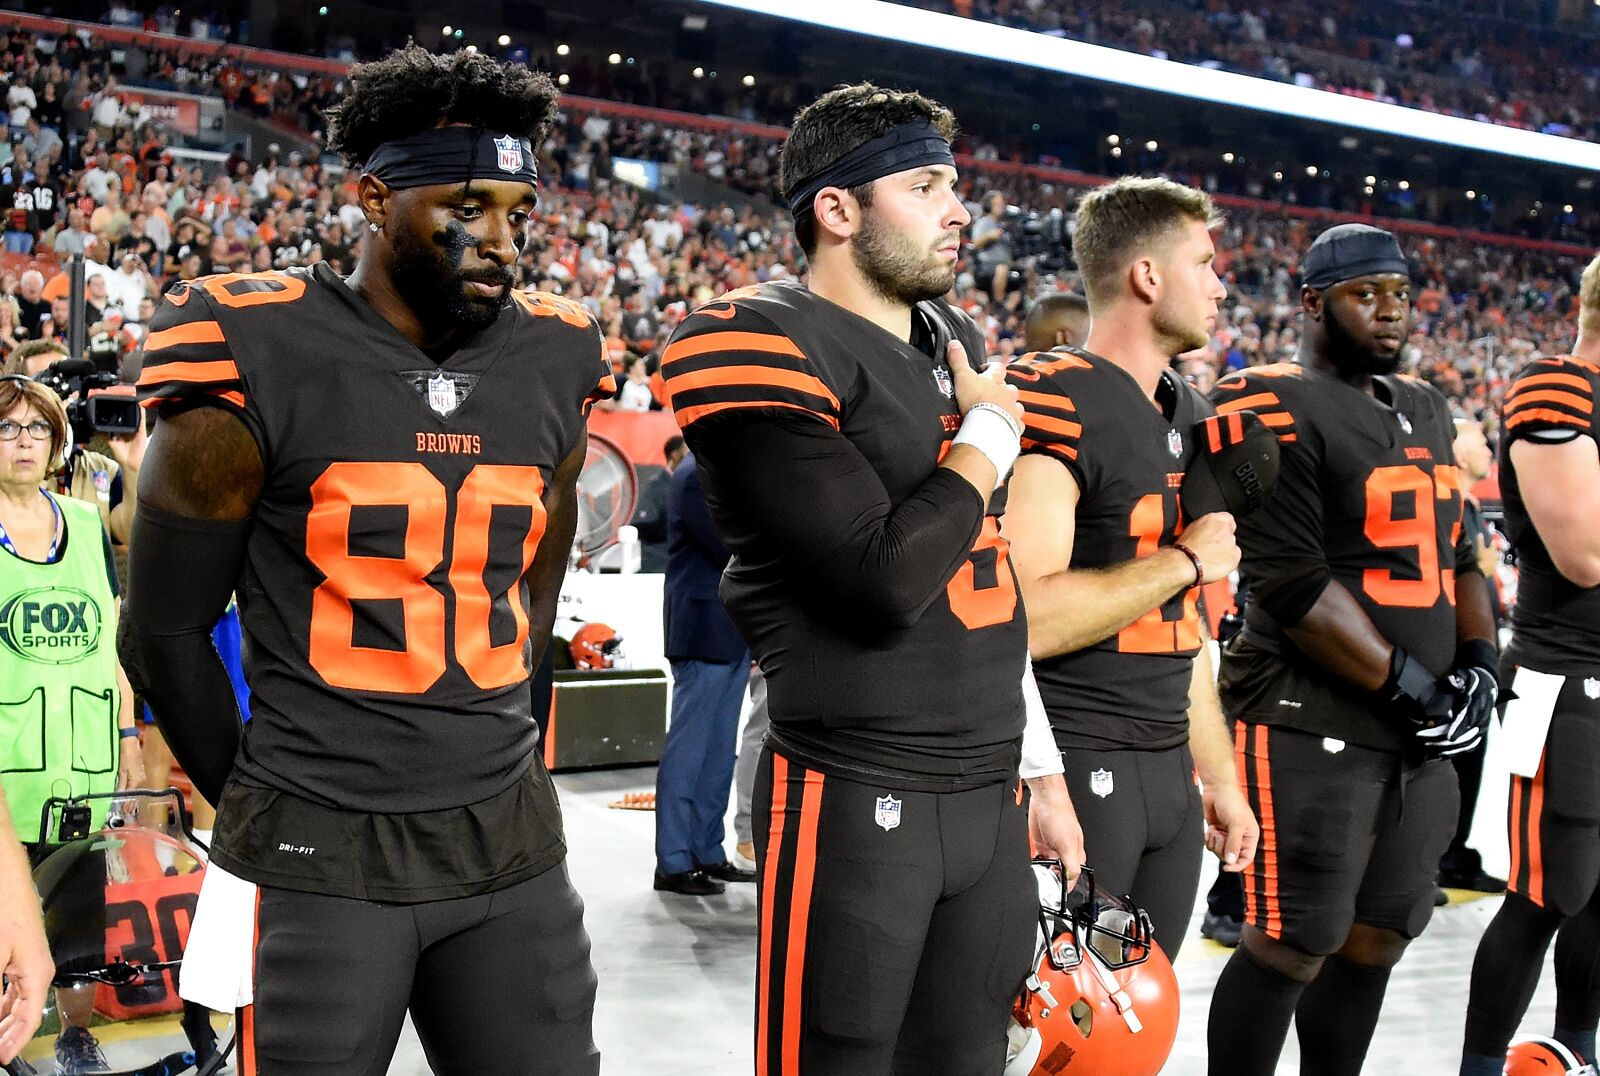 Cleveland Browns: 2019 will be Jarvis Landry's last season with team